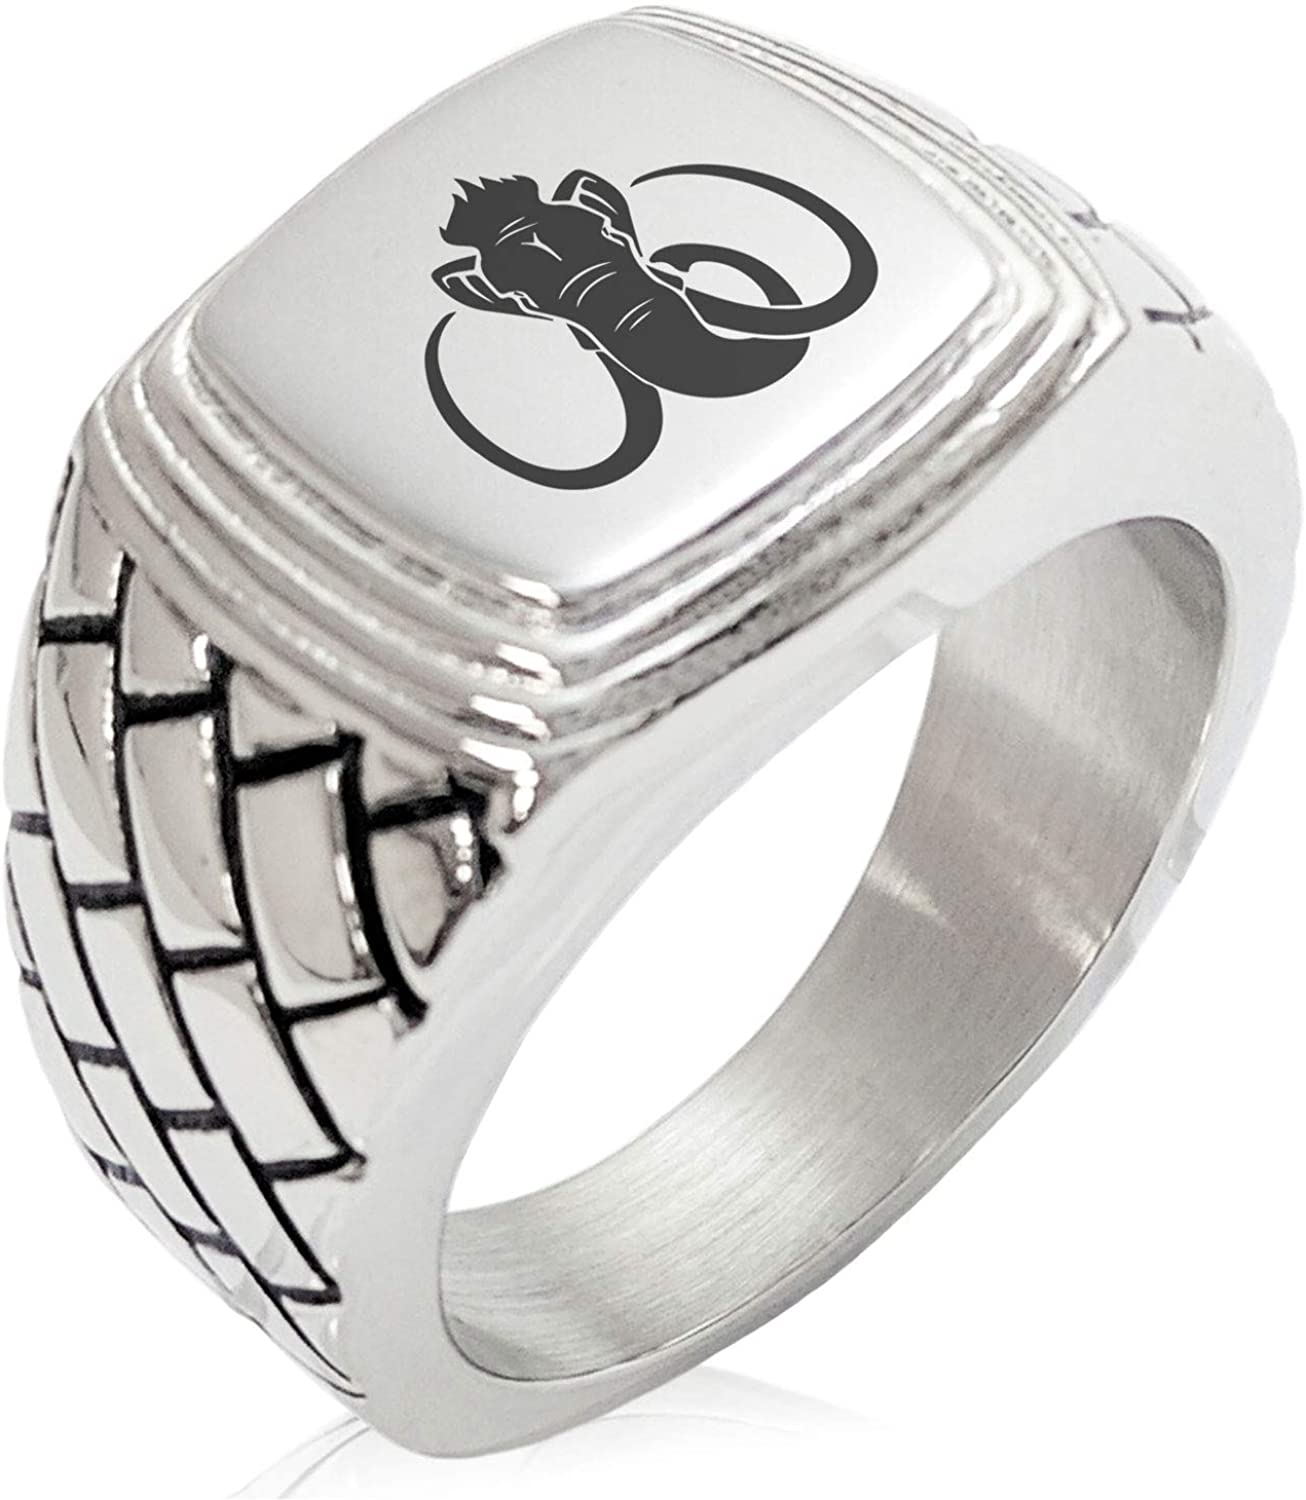 Tioneer Stainless Steel Woolly Mammoth Concentric Pattern Step-Down Biker Style Polished Ring